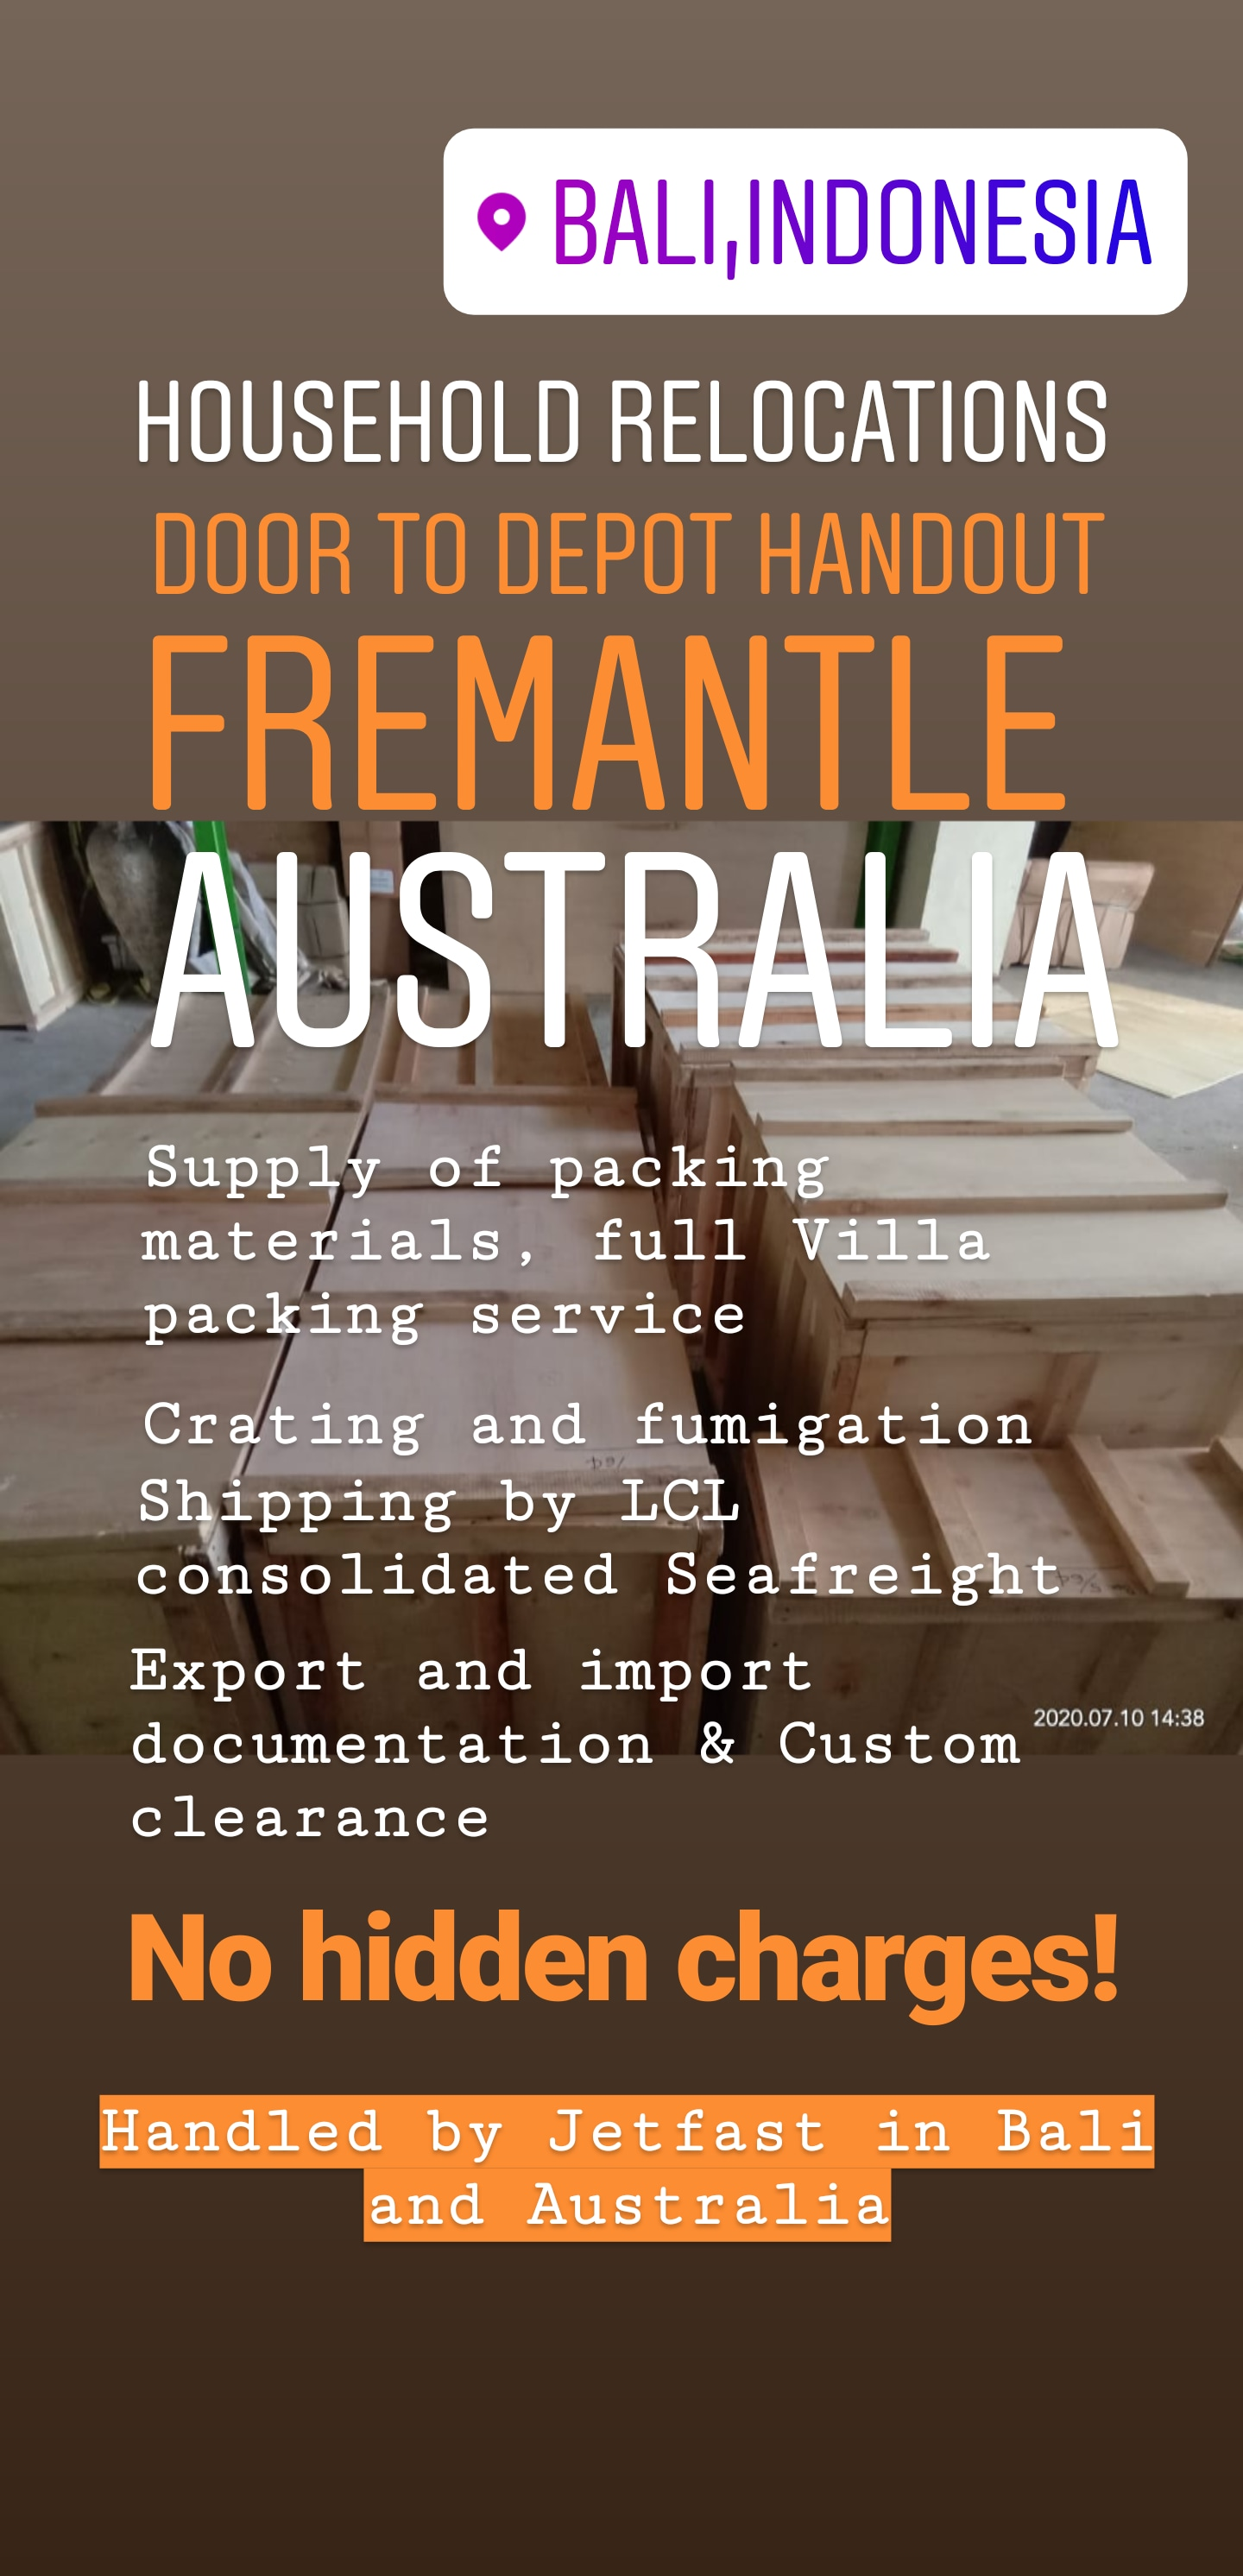 Moving from Bali to Fremantle